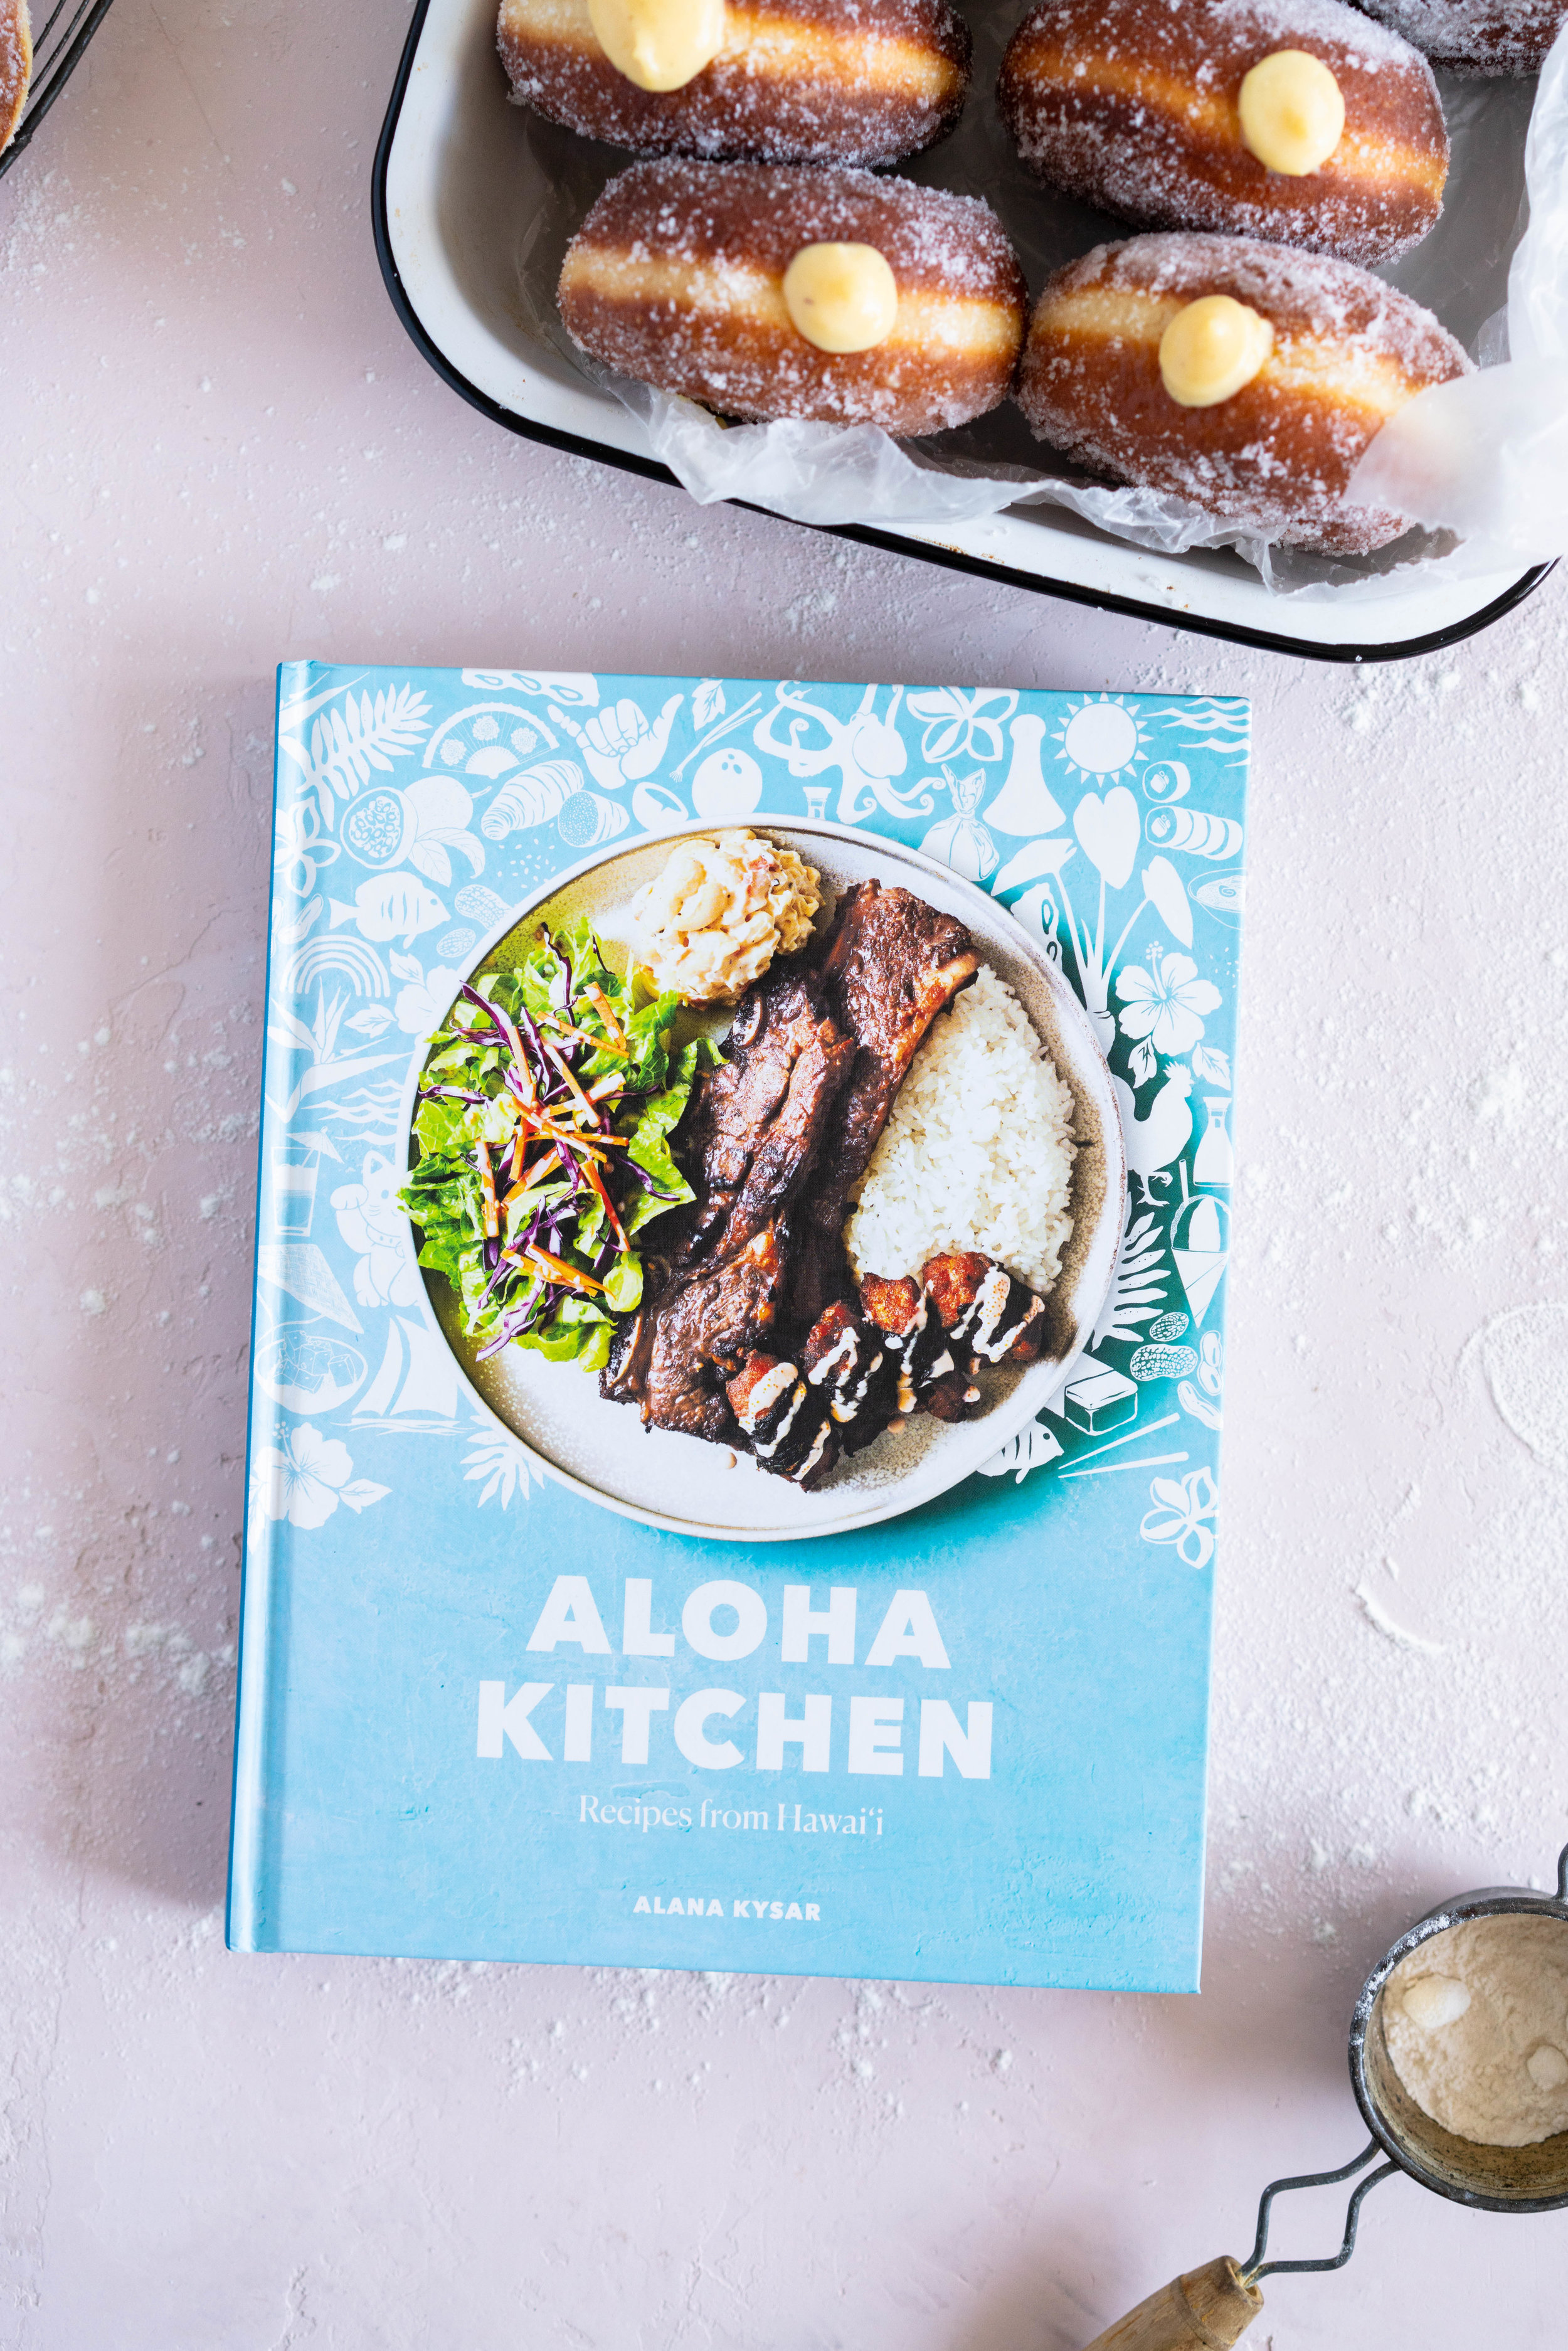 Malasadas with Liliko'i (Passionfruit) Pastry Cream Filling from Alana Kysar's new book, Aloha Kitchen. Malasadas are Portuguese style doughnuts, which are soft and fluffy. They are fried off, then rolled in sugar, then filled with a silky liliko'i pastry cream. These are the perfect indulgent treat, and are super easy to make. #malasadas #doughnuts #lilikoi #passionfruit